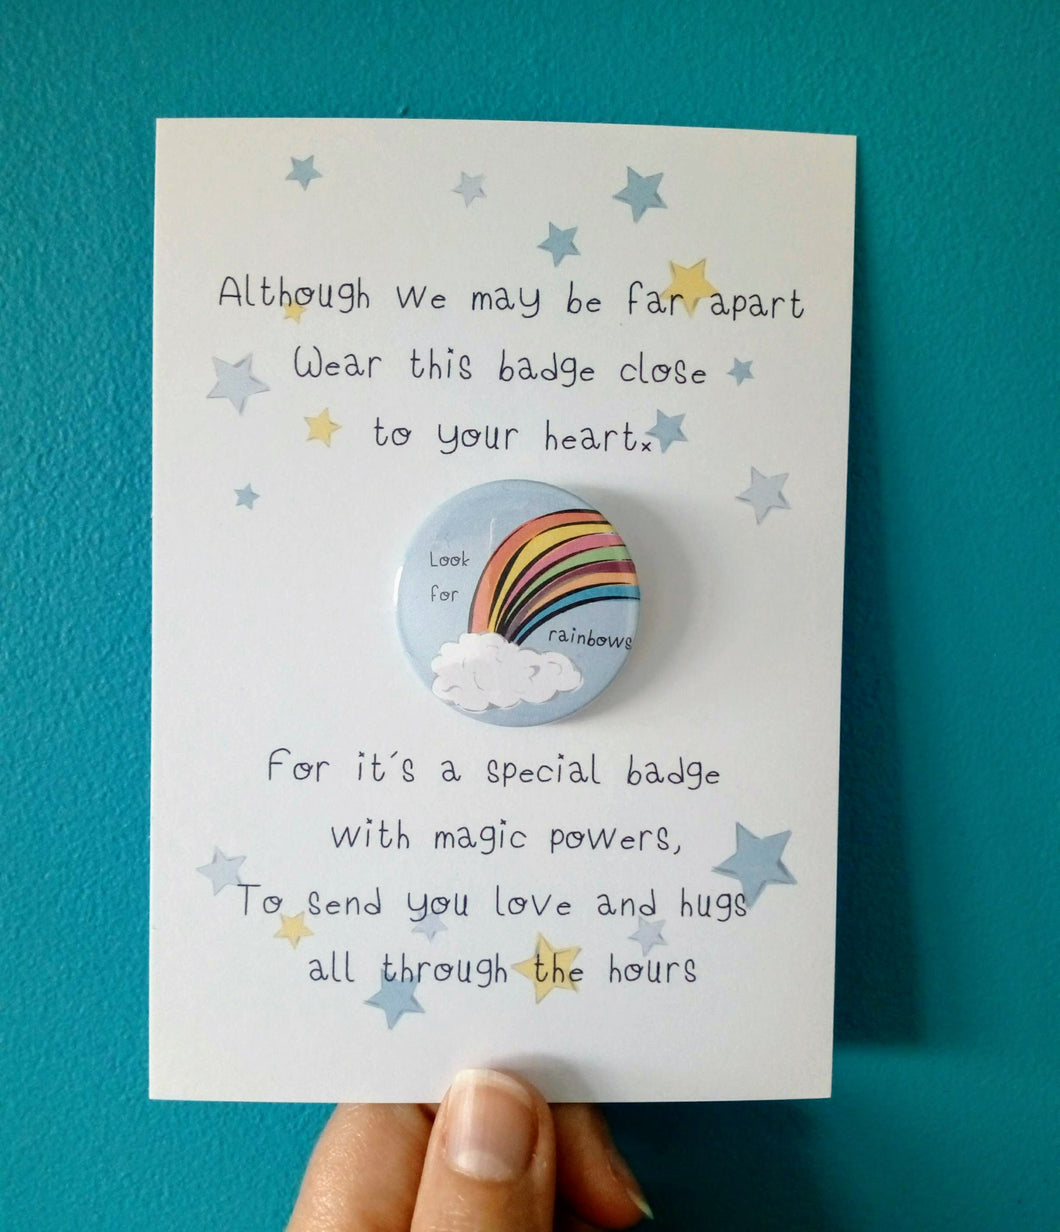 Look for Rainbows Badge Set